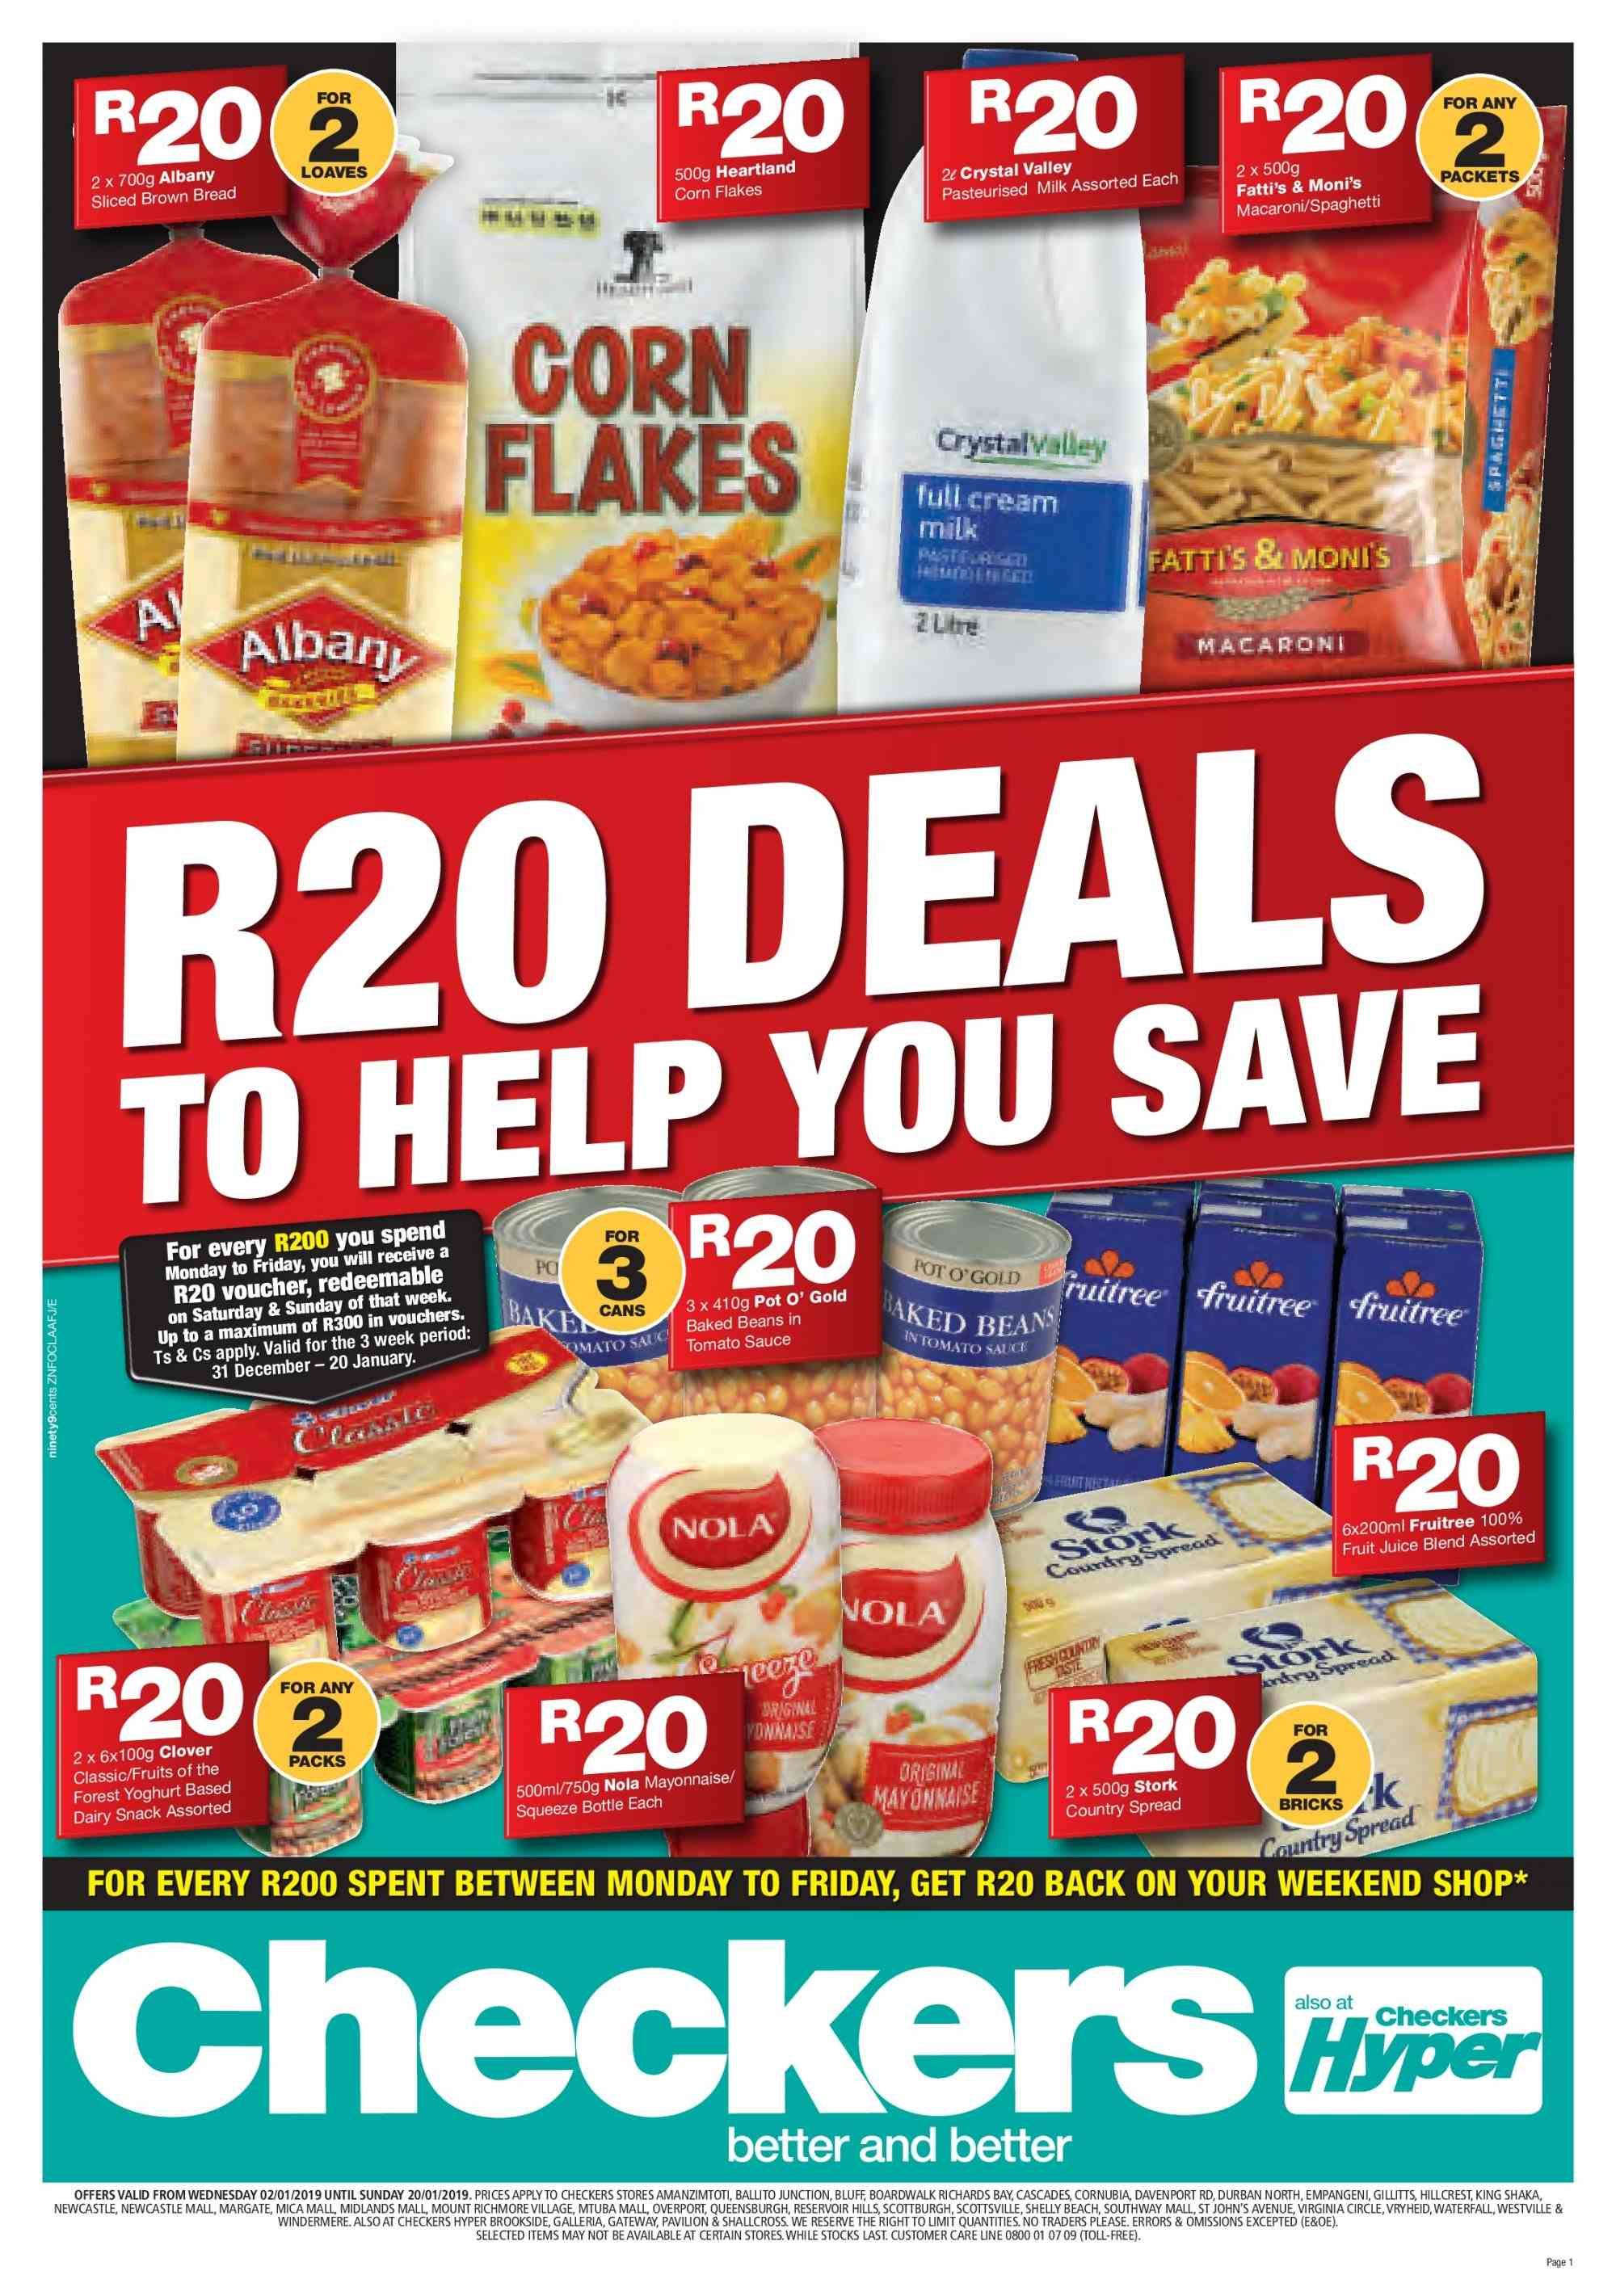 Checkers special - 01.02.2019 - 01.20.2019 - Sales products - beans, bottle, bread, corn, cream, mayonnaise, milk, spaghetti, pot, macaroni, snack, yoghurt, corn flakes. Page 1.